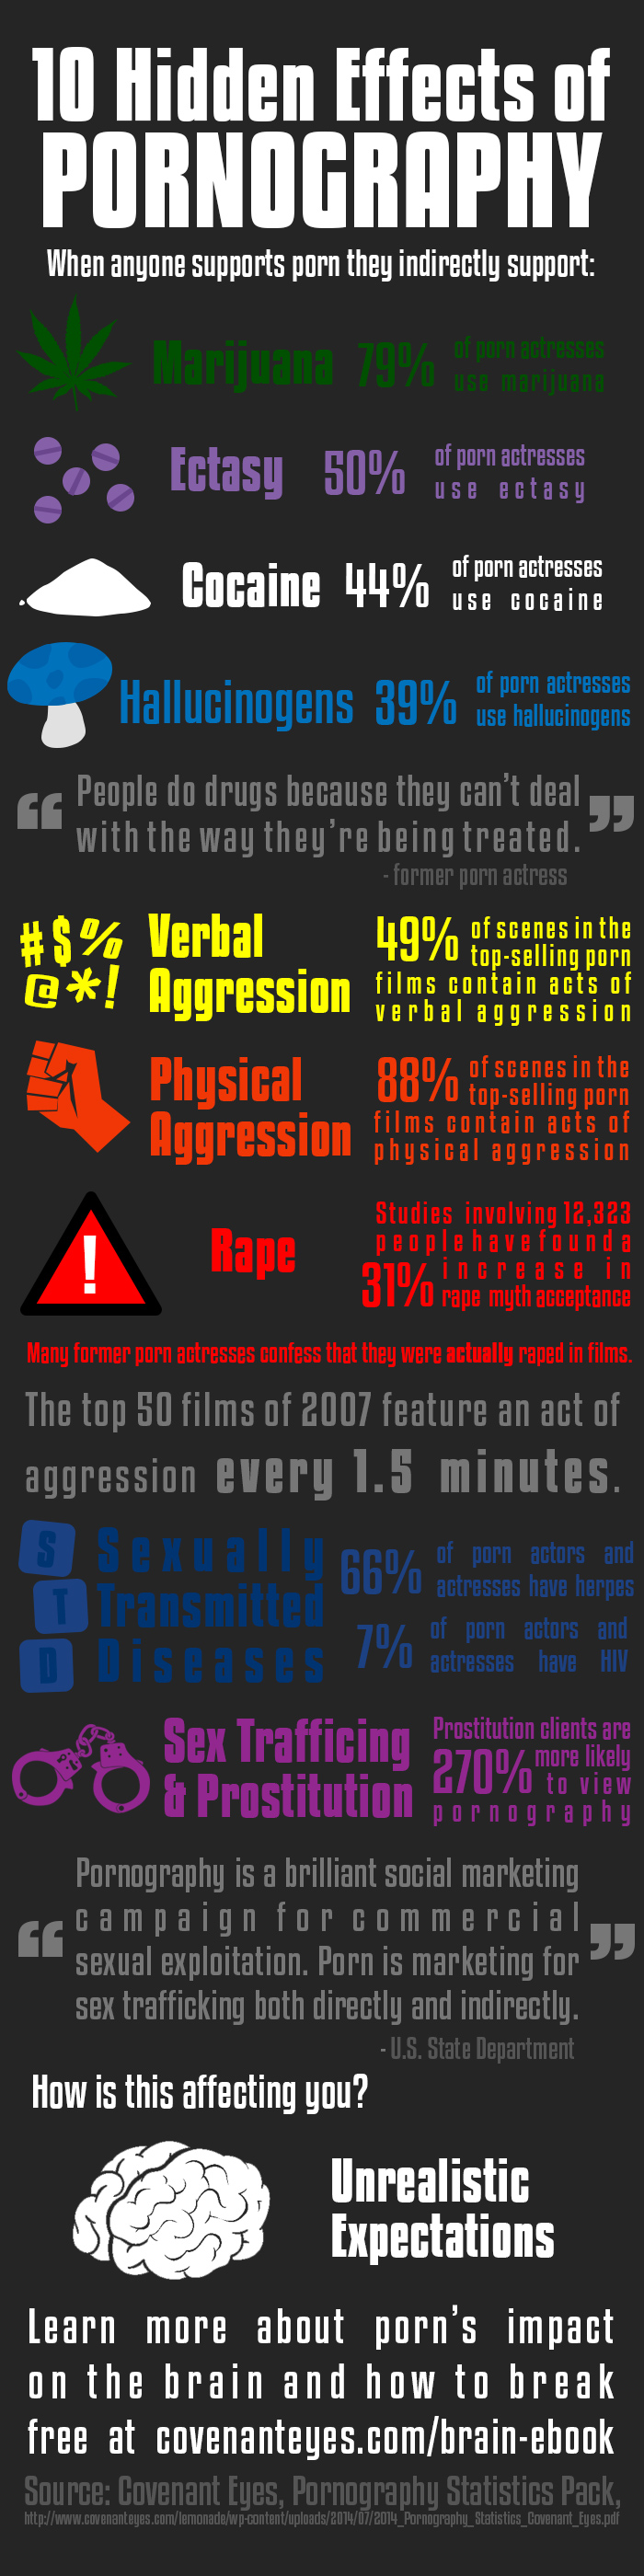 10 Hidden Effects of Pornography Infographic